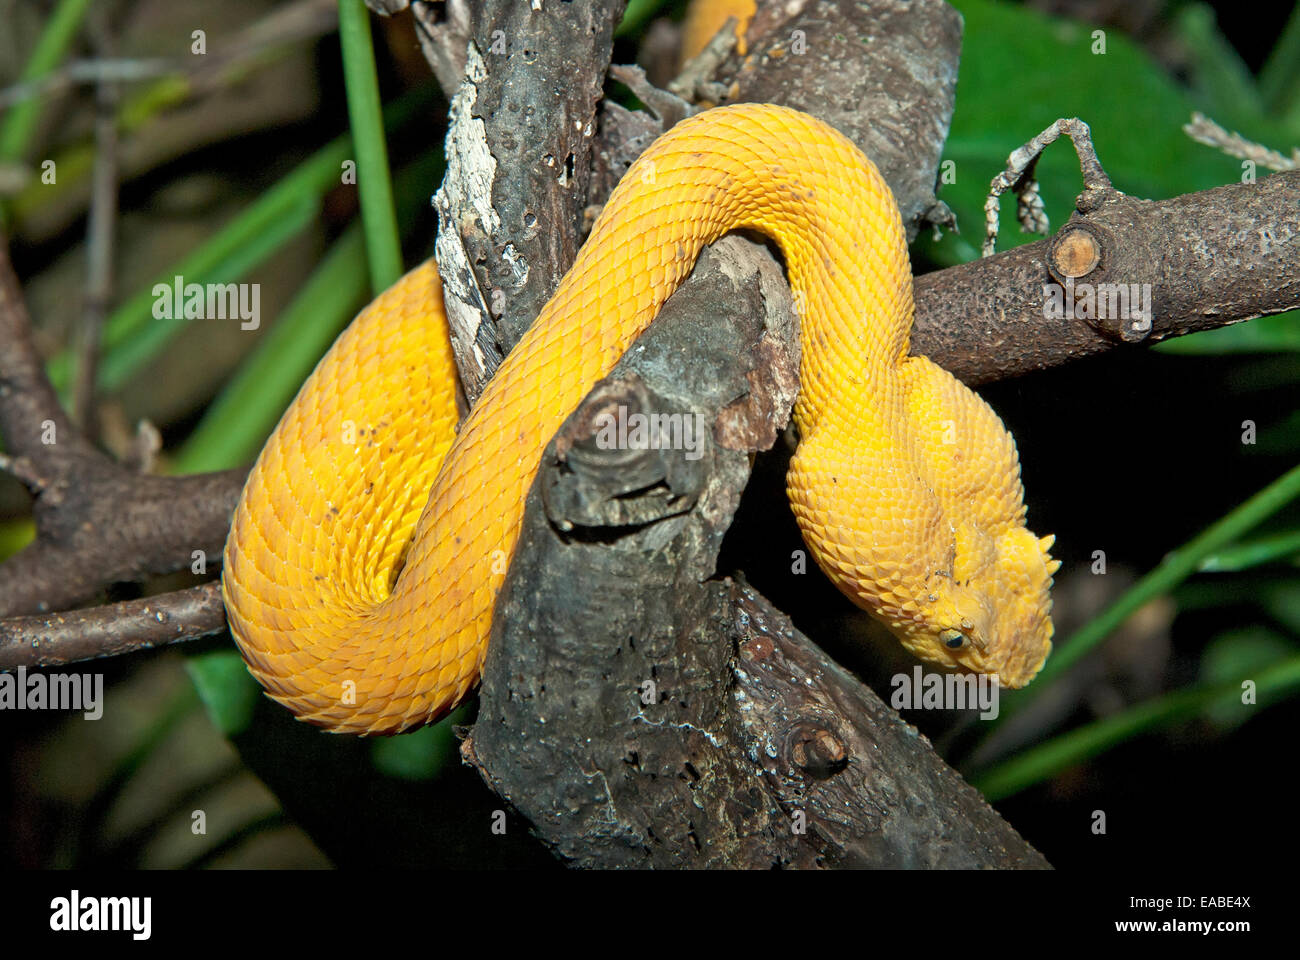 Eyelash Viper Snake Stock Photos Eyelash Viper Snake Stock Images